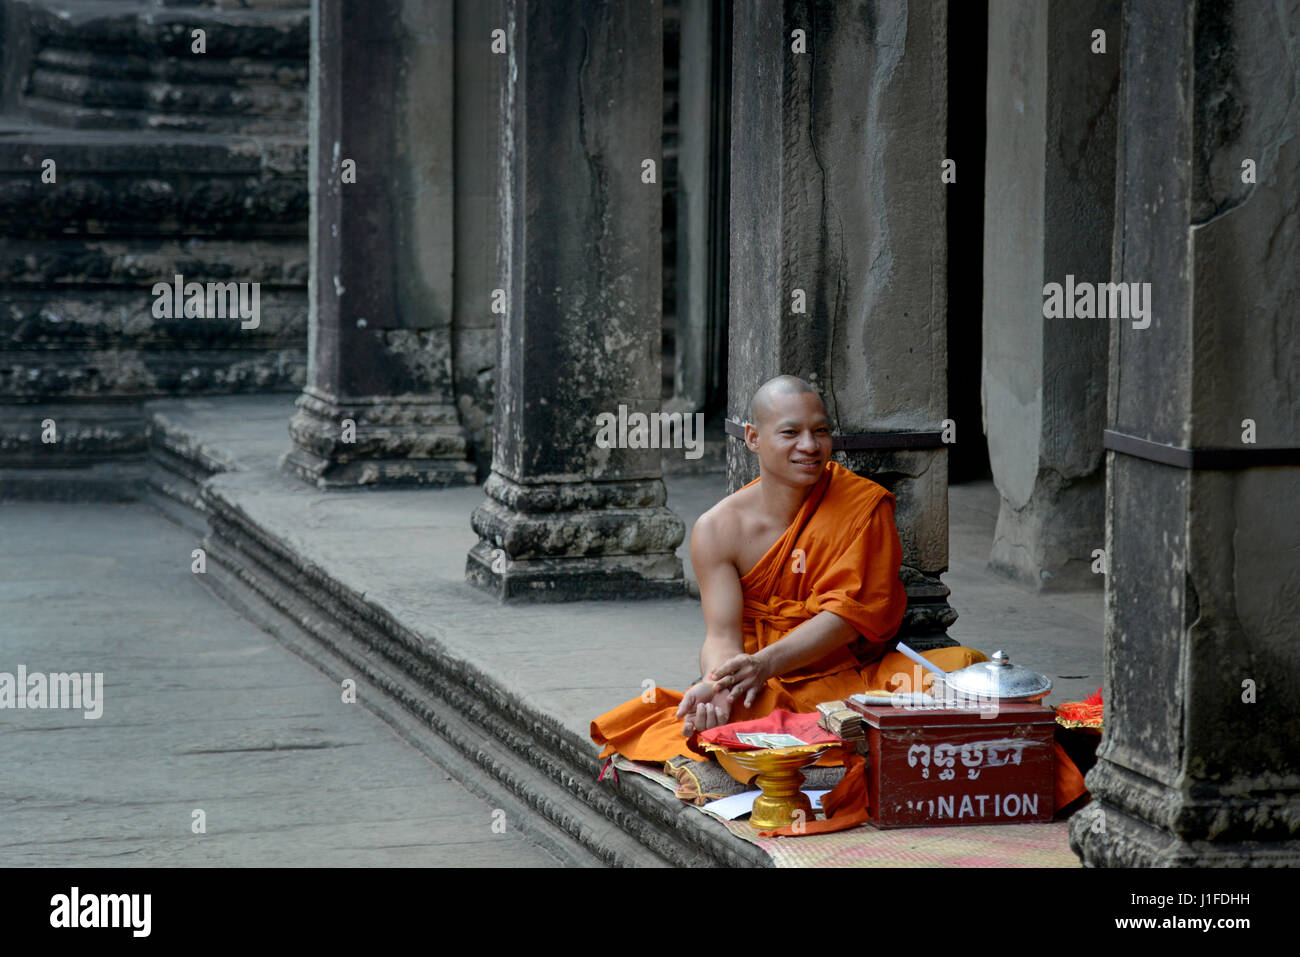 Buddhist monk sells prayers in the Angkor Wat temple complex in Siem Reap, Cambodia. - Stock Image